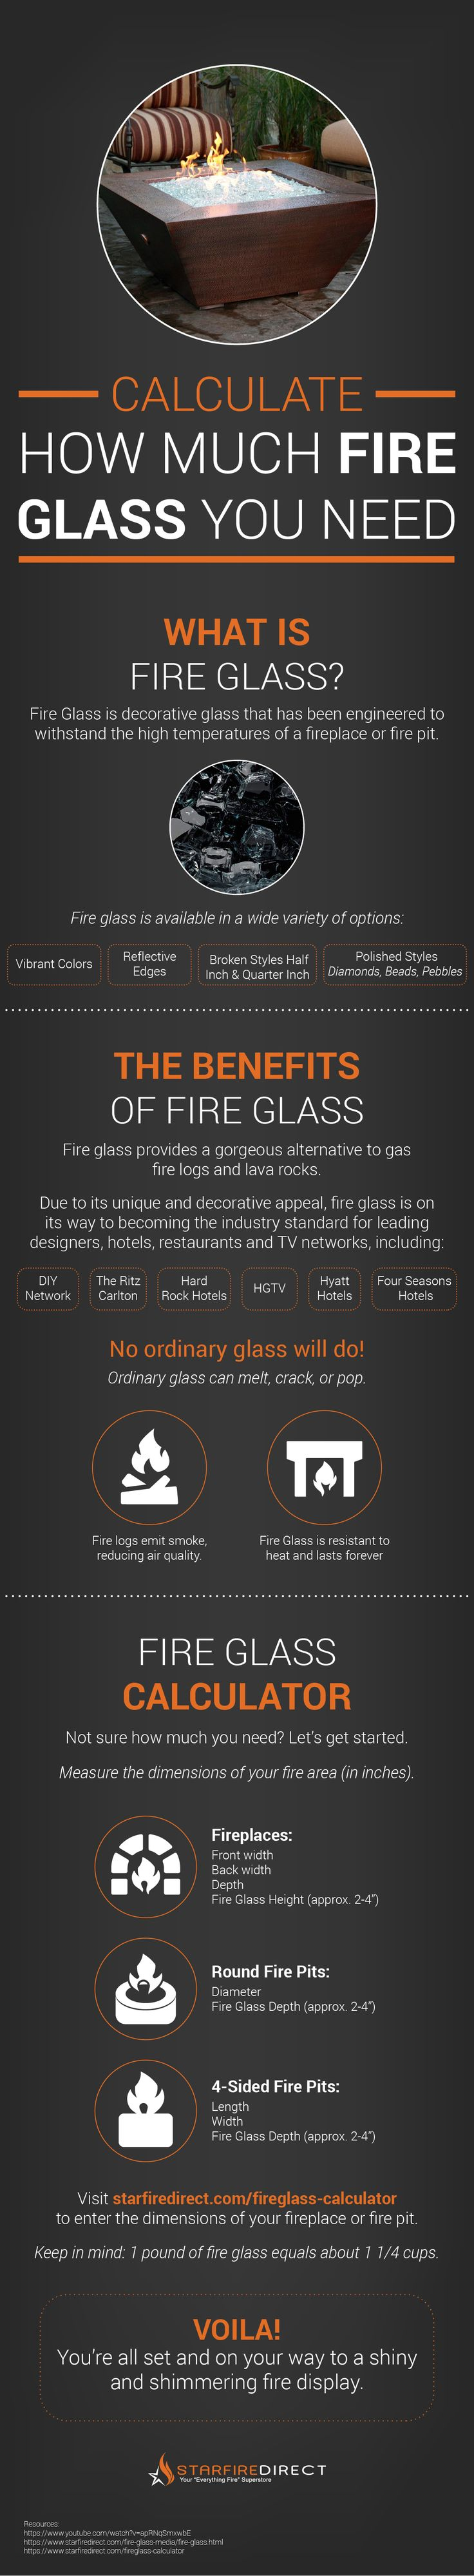 When you purchase an outdoor gas fireplace or fire pit, there is no better element to add than fire glass.